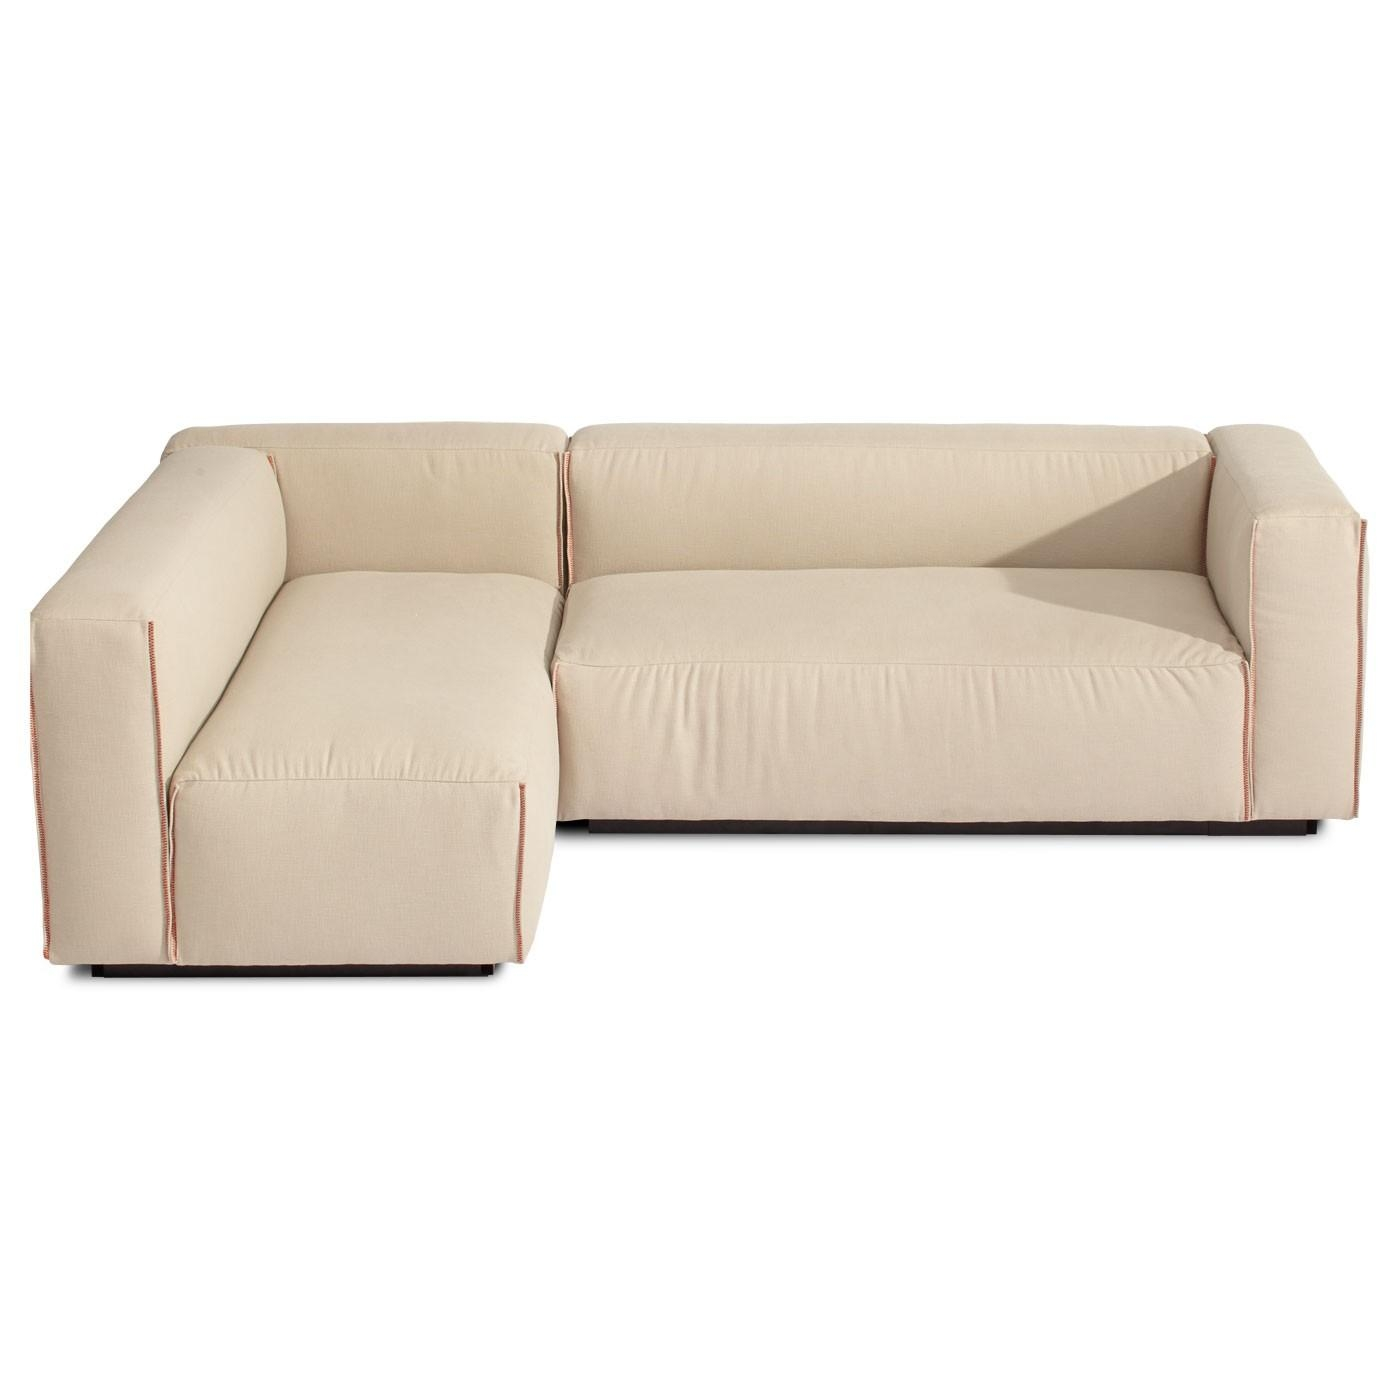 Sectional Sofa For Small Spaces (View 6 of 20)